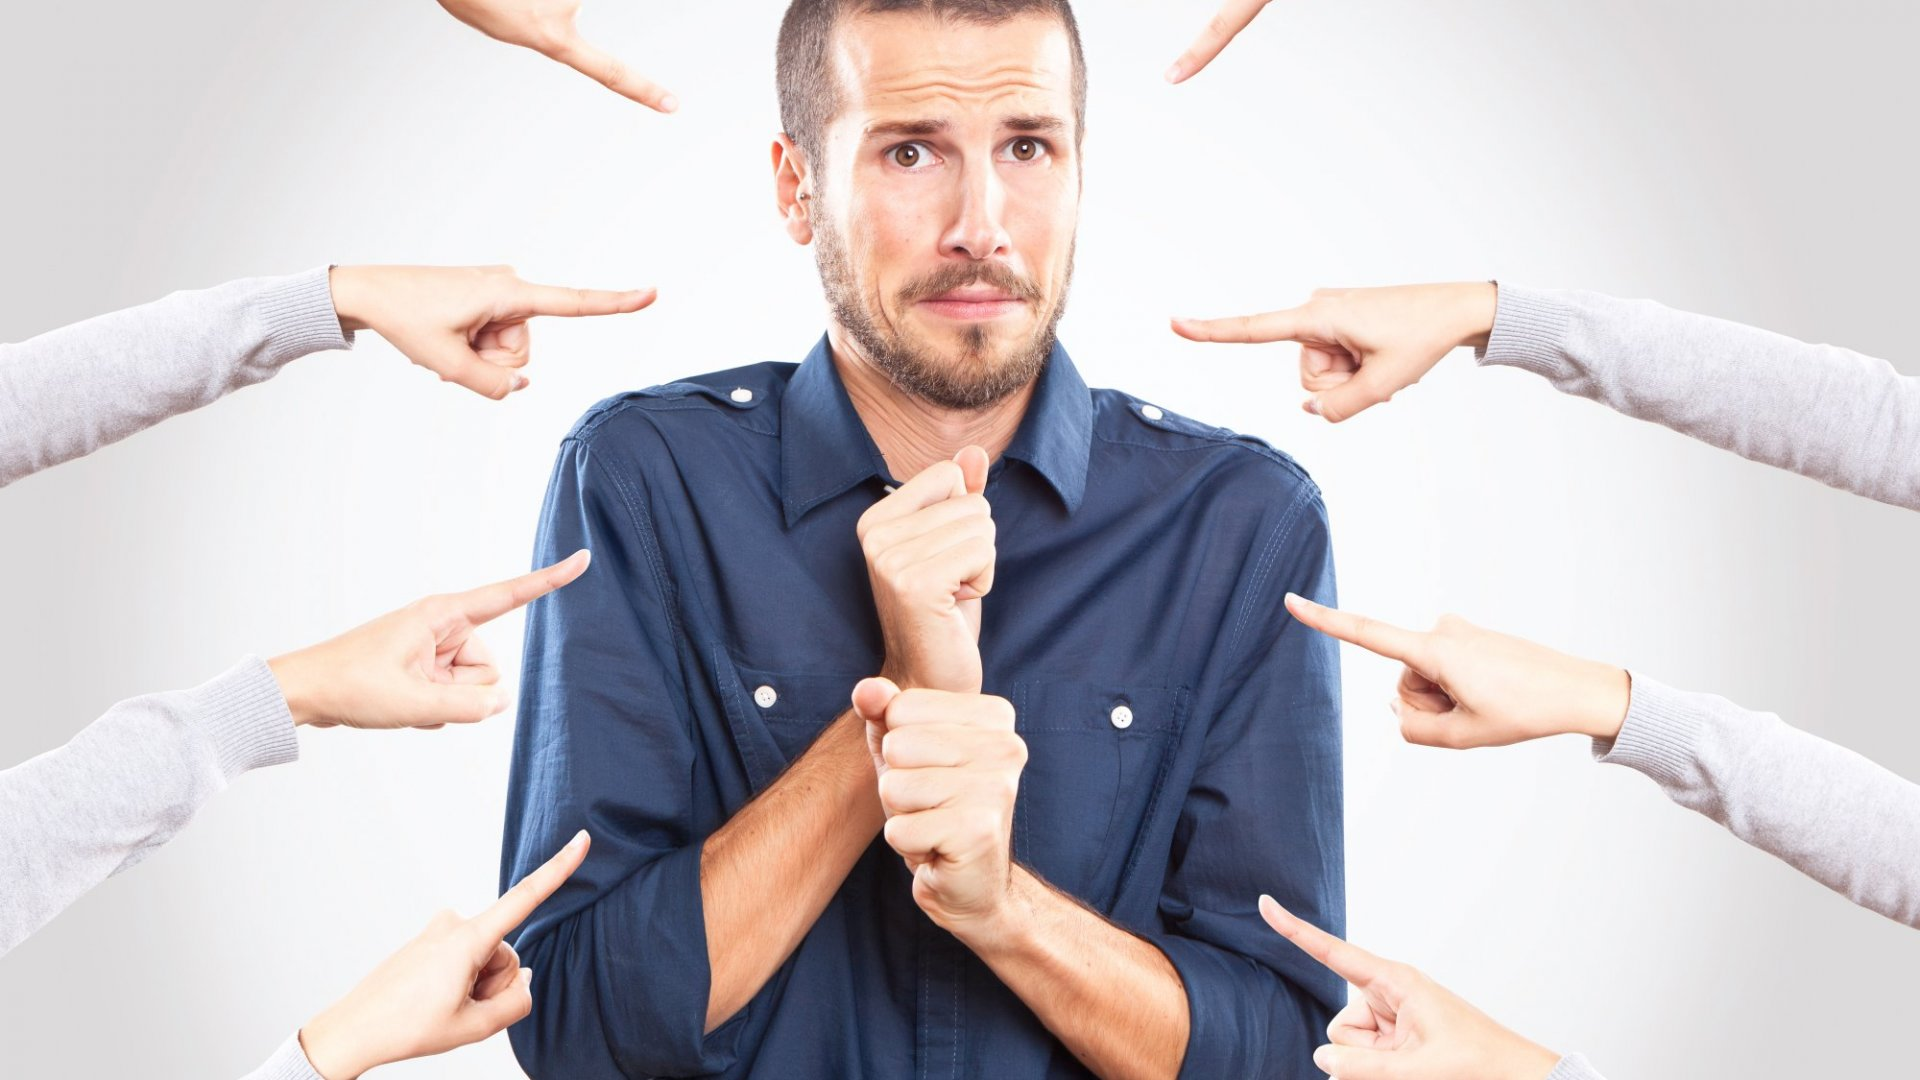 5 Ways to Overcome the Fear of Performance Feedback